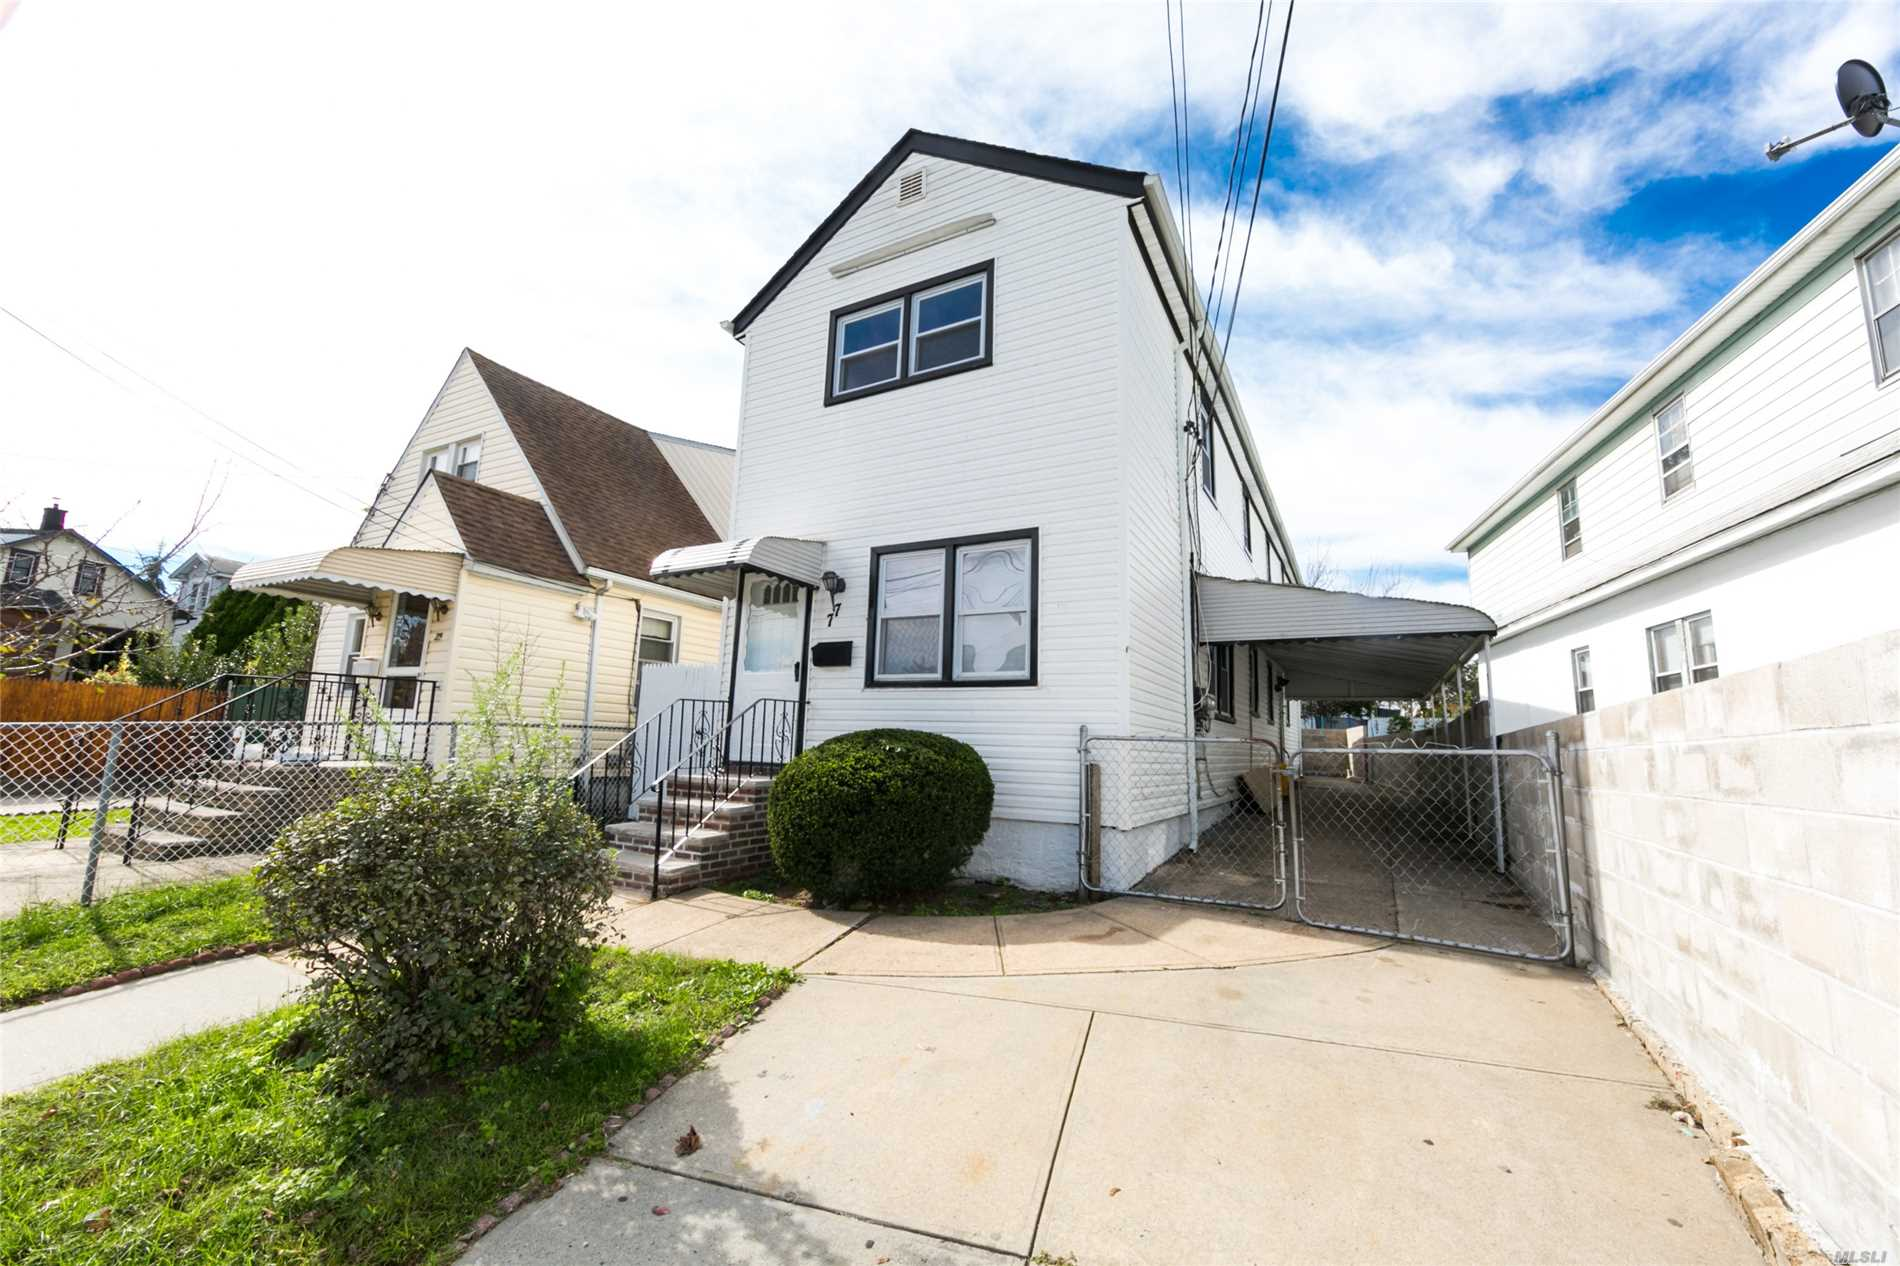 In The Heart Of Elmont Set Up For Mother And Daughter With Proper Permits. One Family Contemporary Detach Home Mostly New!! Four Bedrooms, Two Baths With Living Room And Kitchen, Hardwood Floors, Ceiling Fans, Stainless Steel Appliances, Granite Counters, Private Driveway, Big Backyard, Part Basement. Don't Miss Out On This Fantastic Opportunity!!!